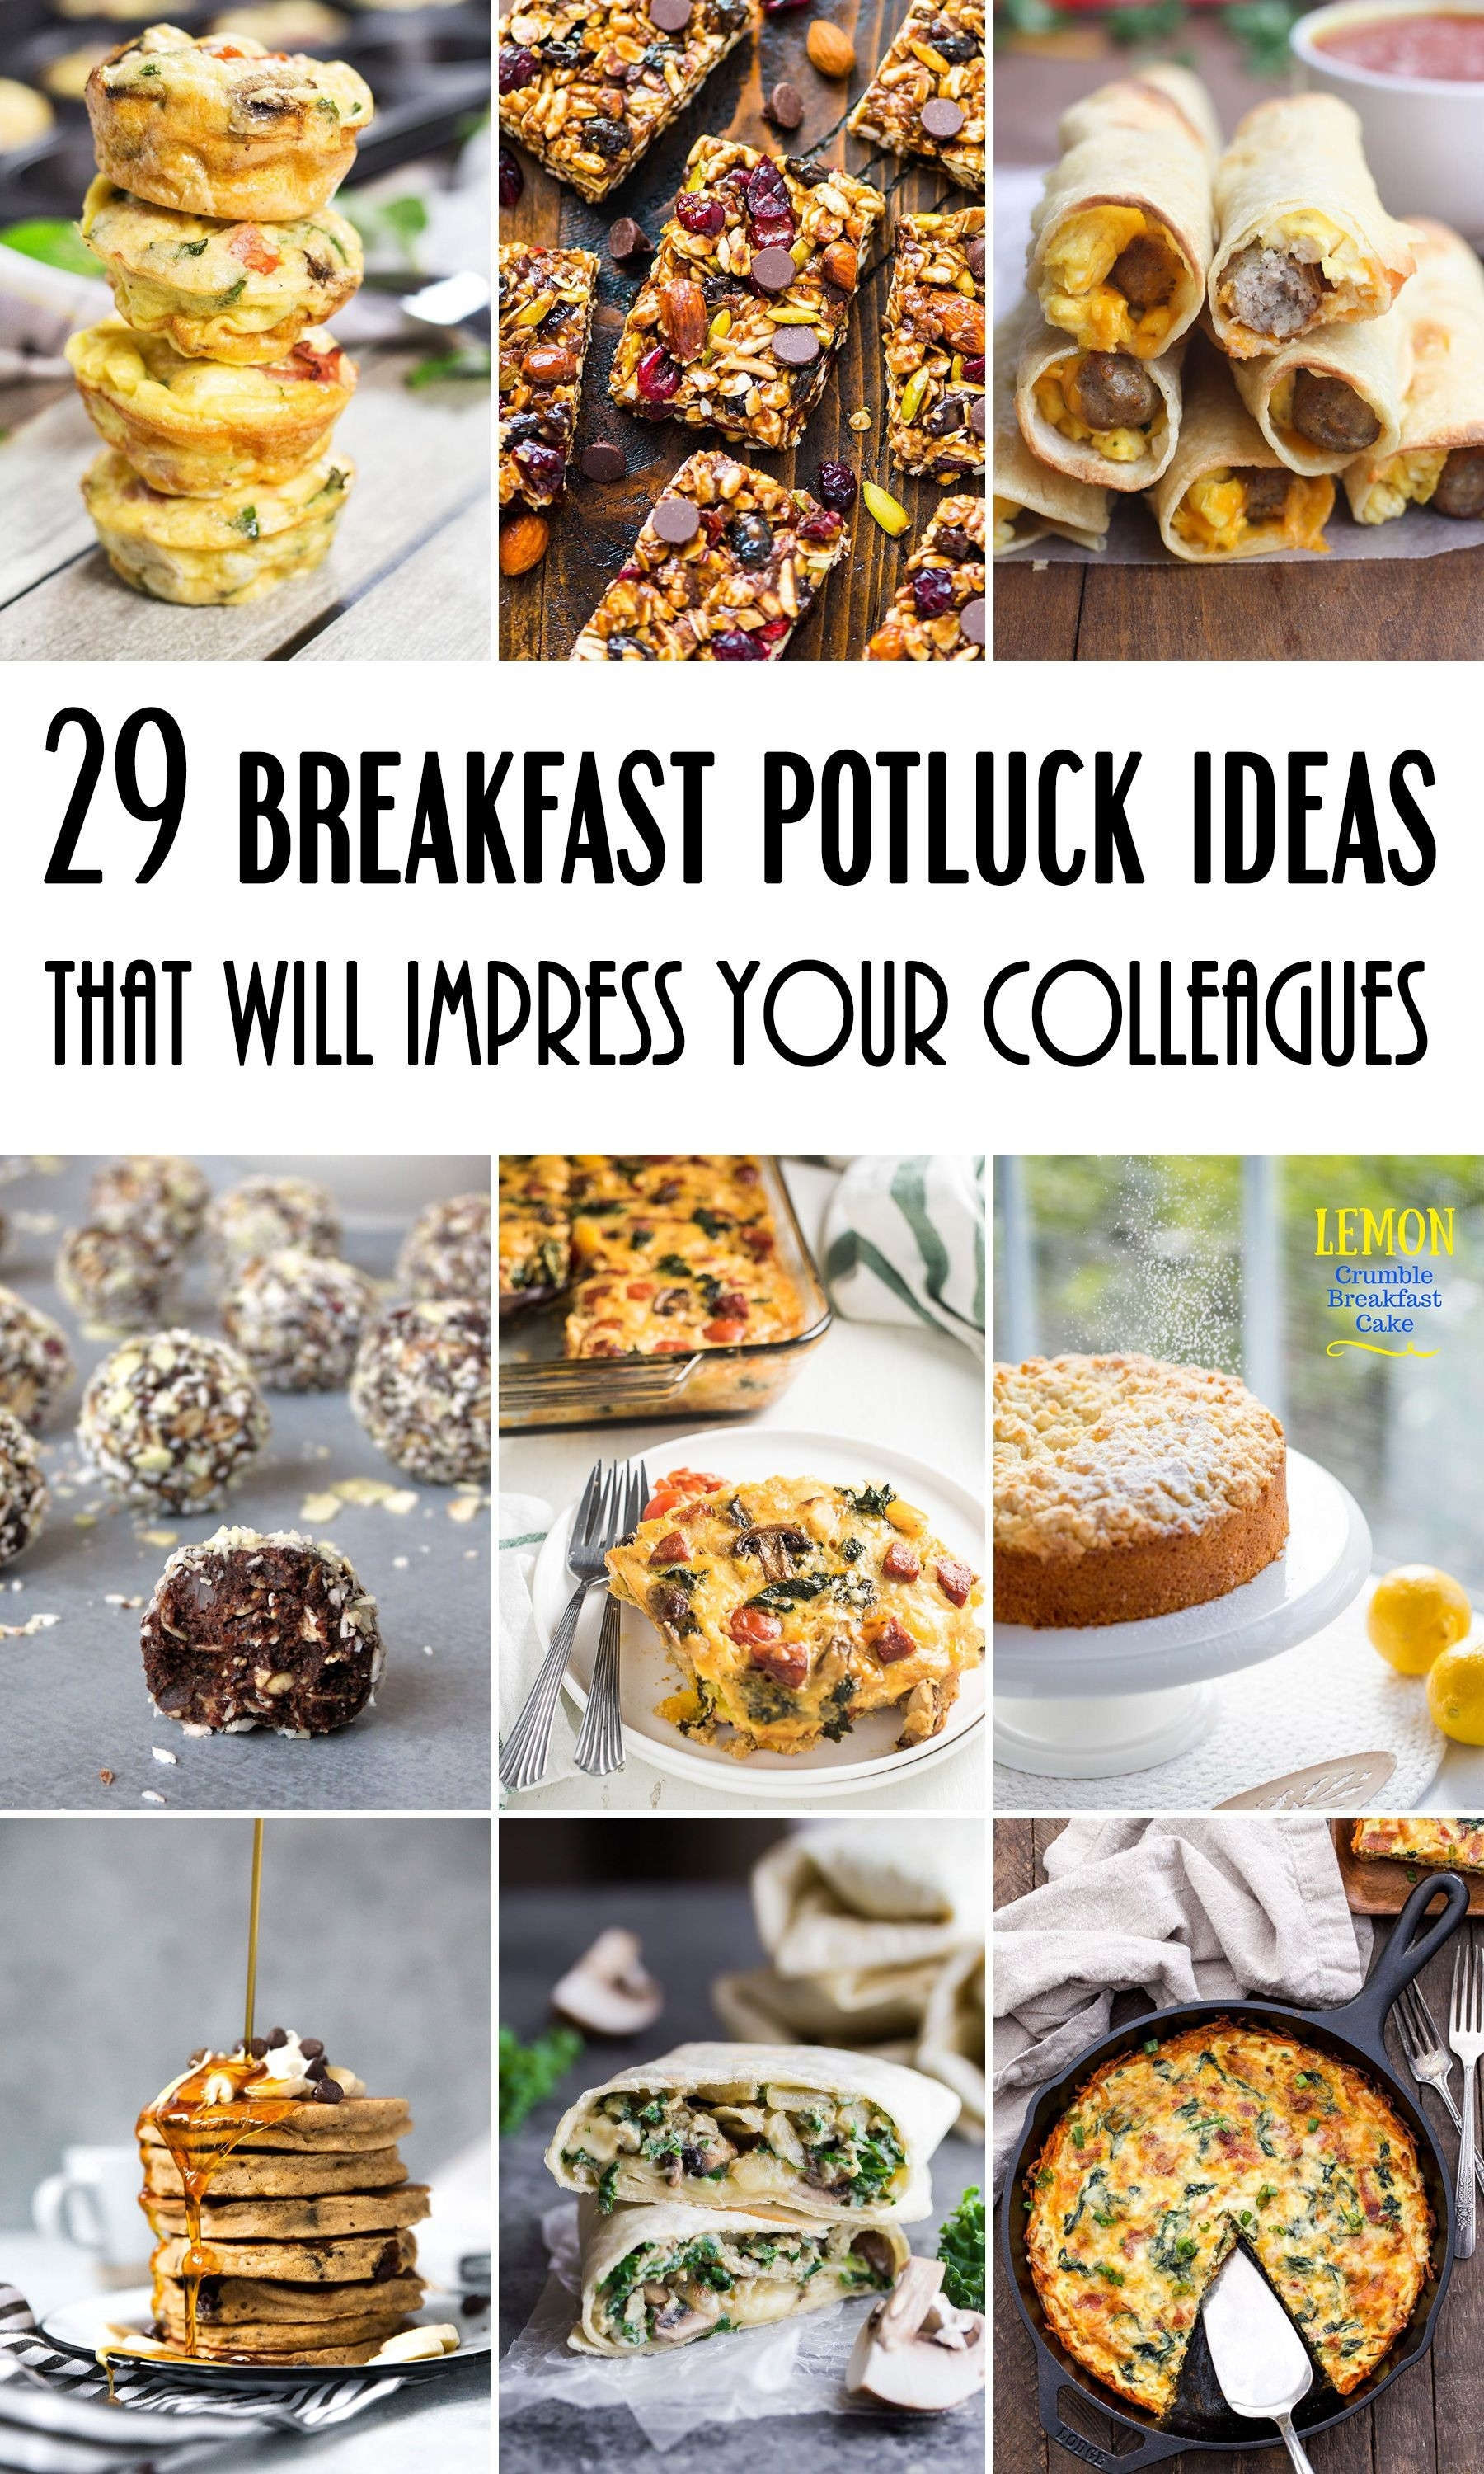 29 Breakfast Potluck Ideas For Work That Will Impress Your for Breakfast Potluck Ideas 37632